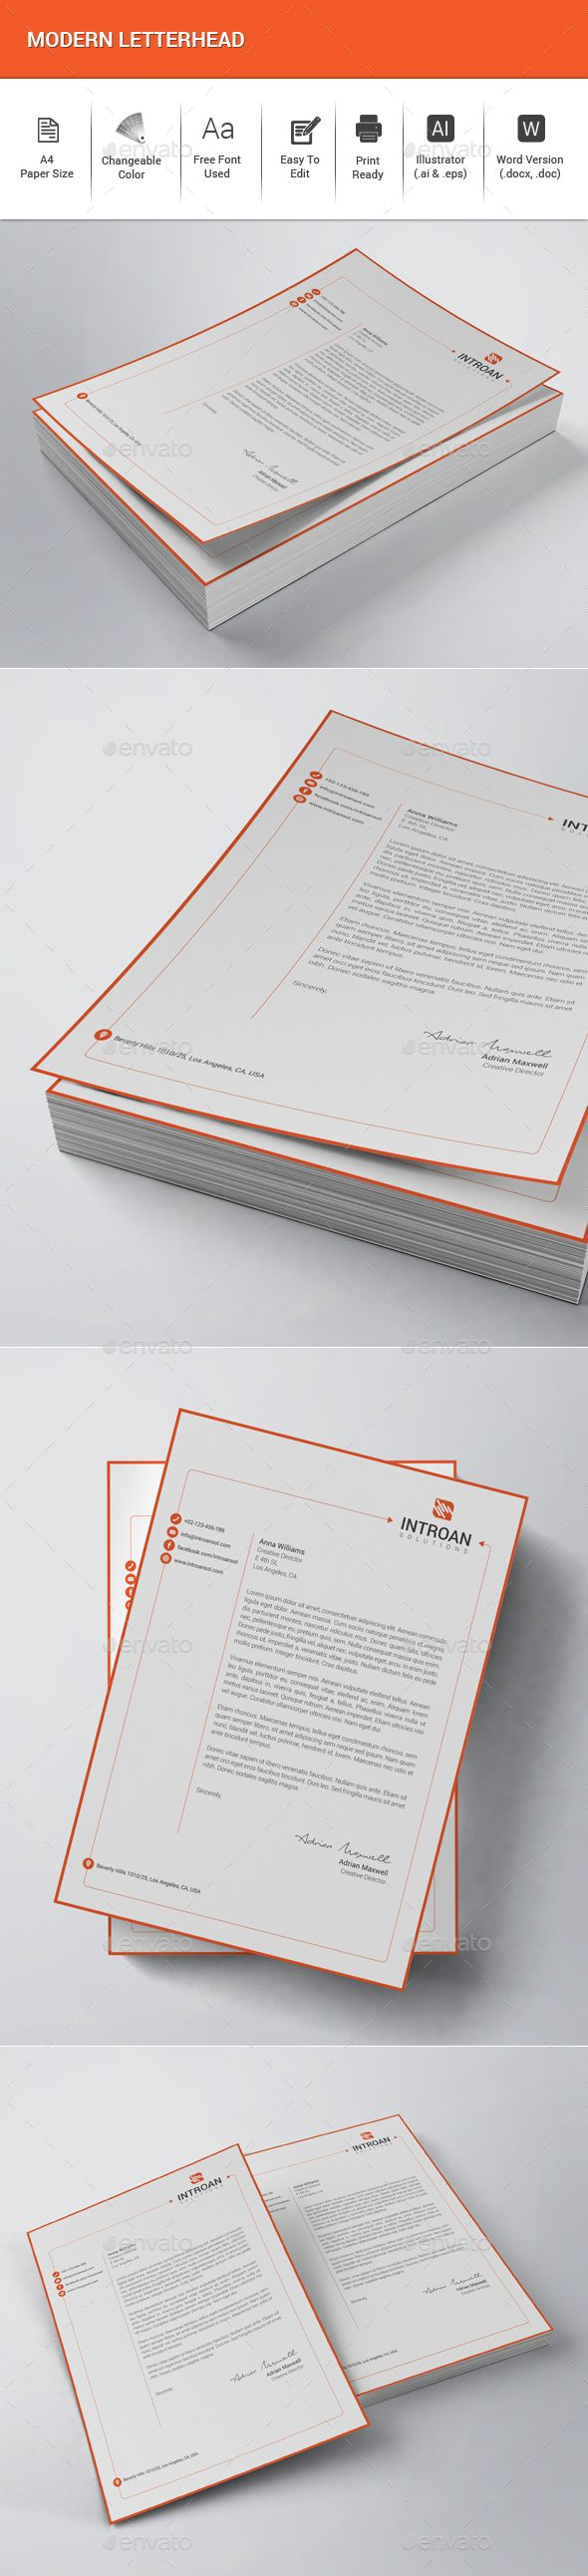 modern letterhead stationery print templates download here https